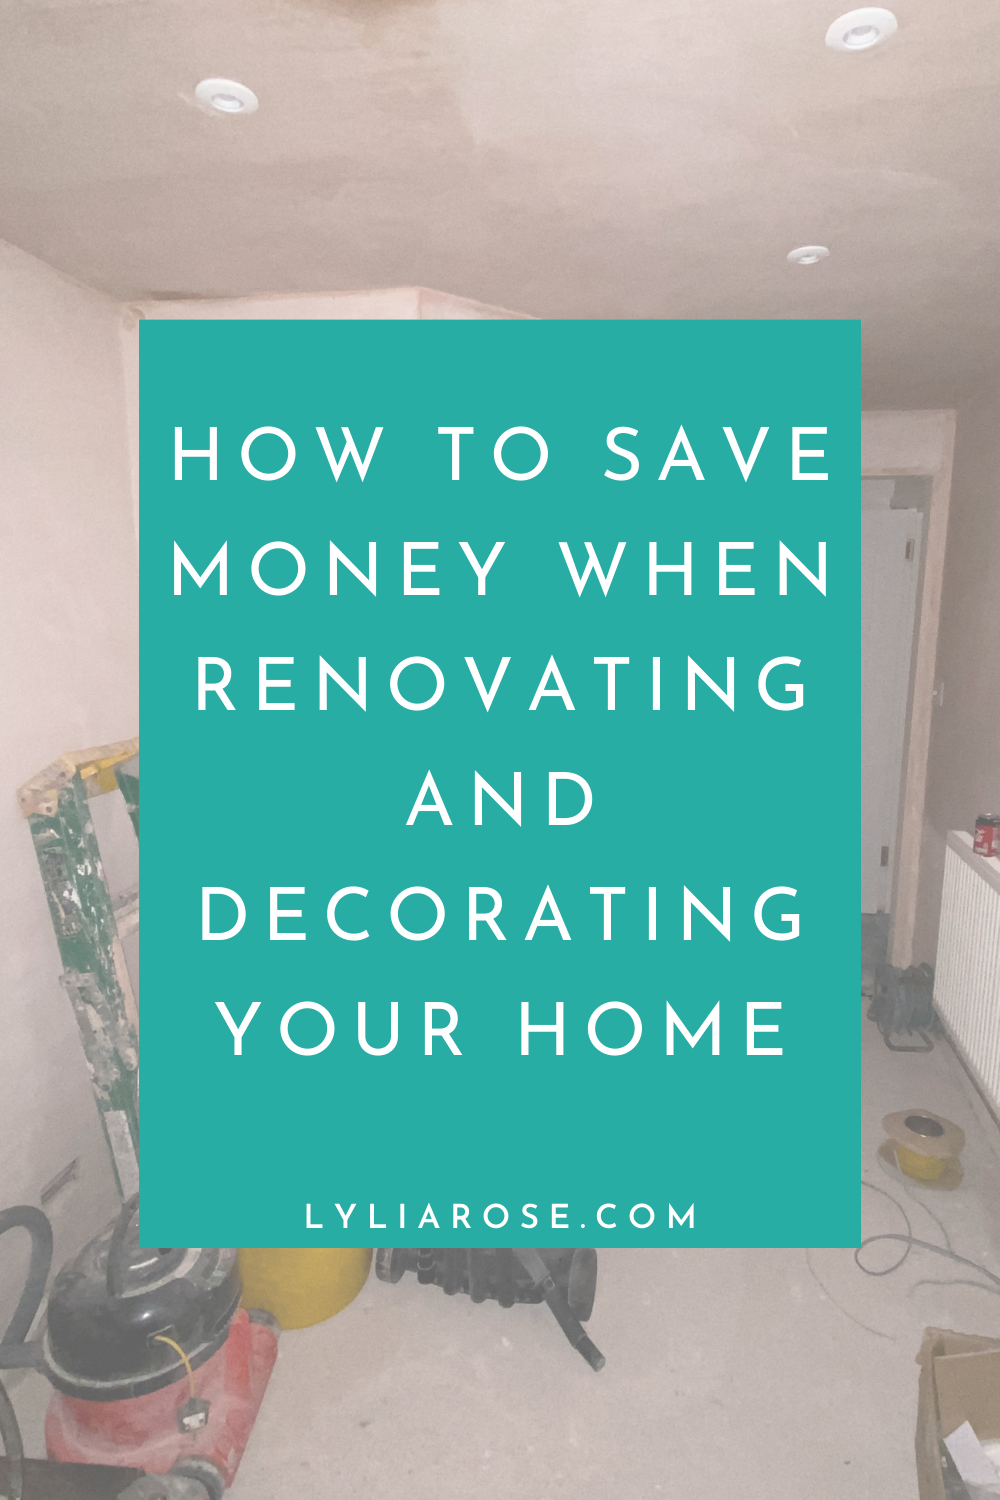 How to save money when renovating and decorating your home